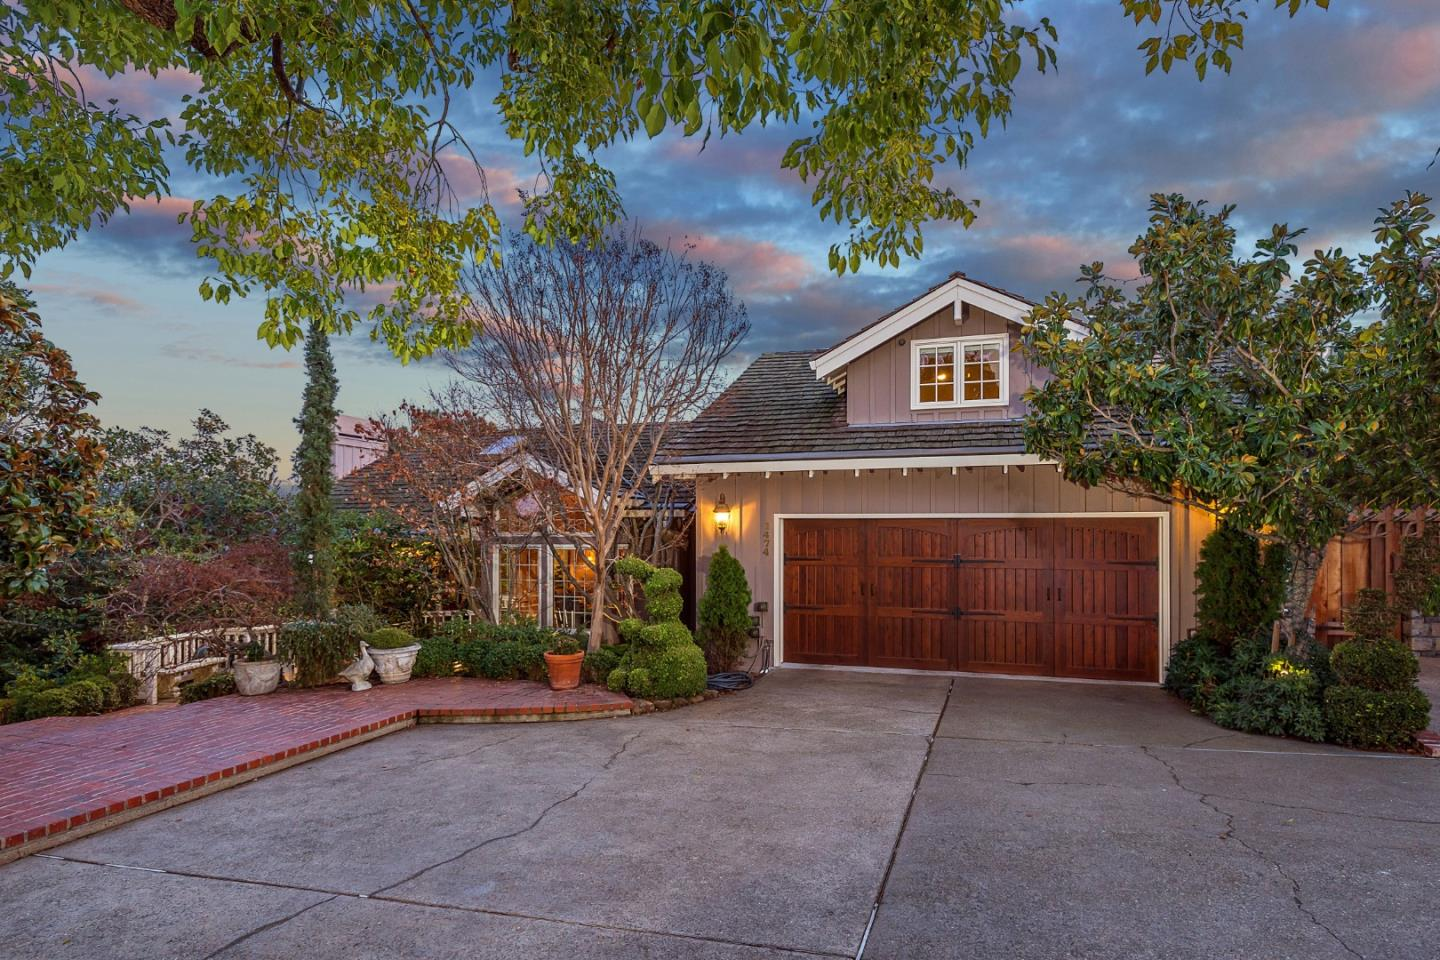 1474 CLUB VIEW TER, LOS ALTOS, CA 94024